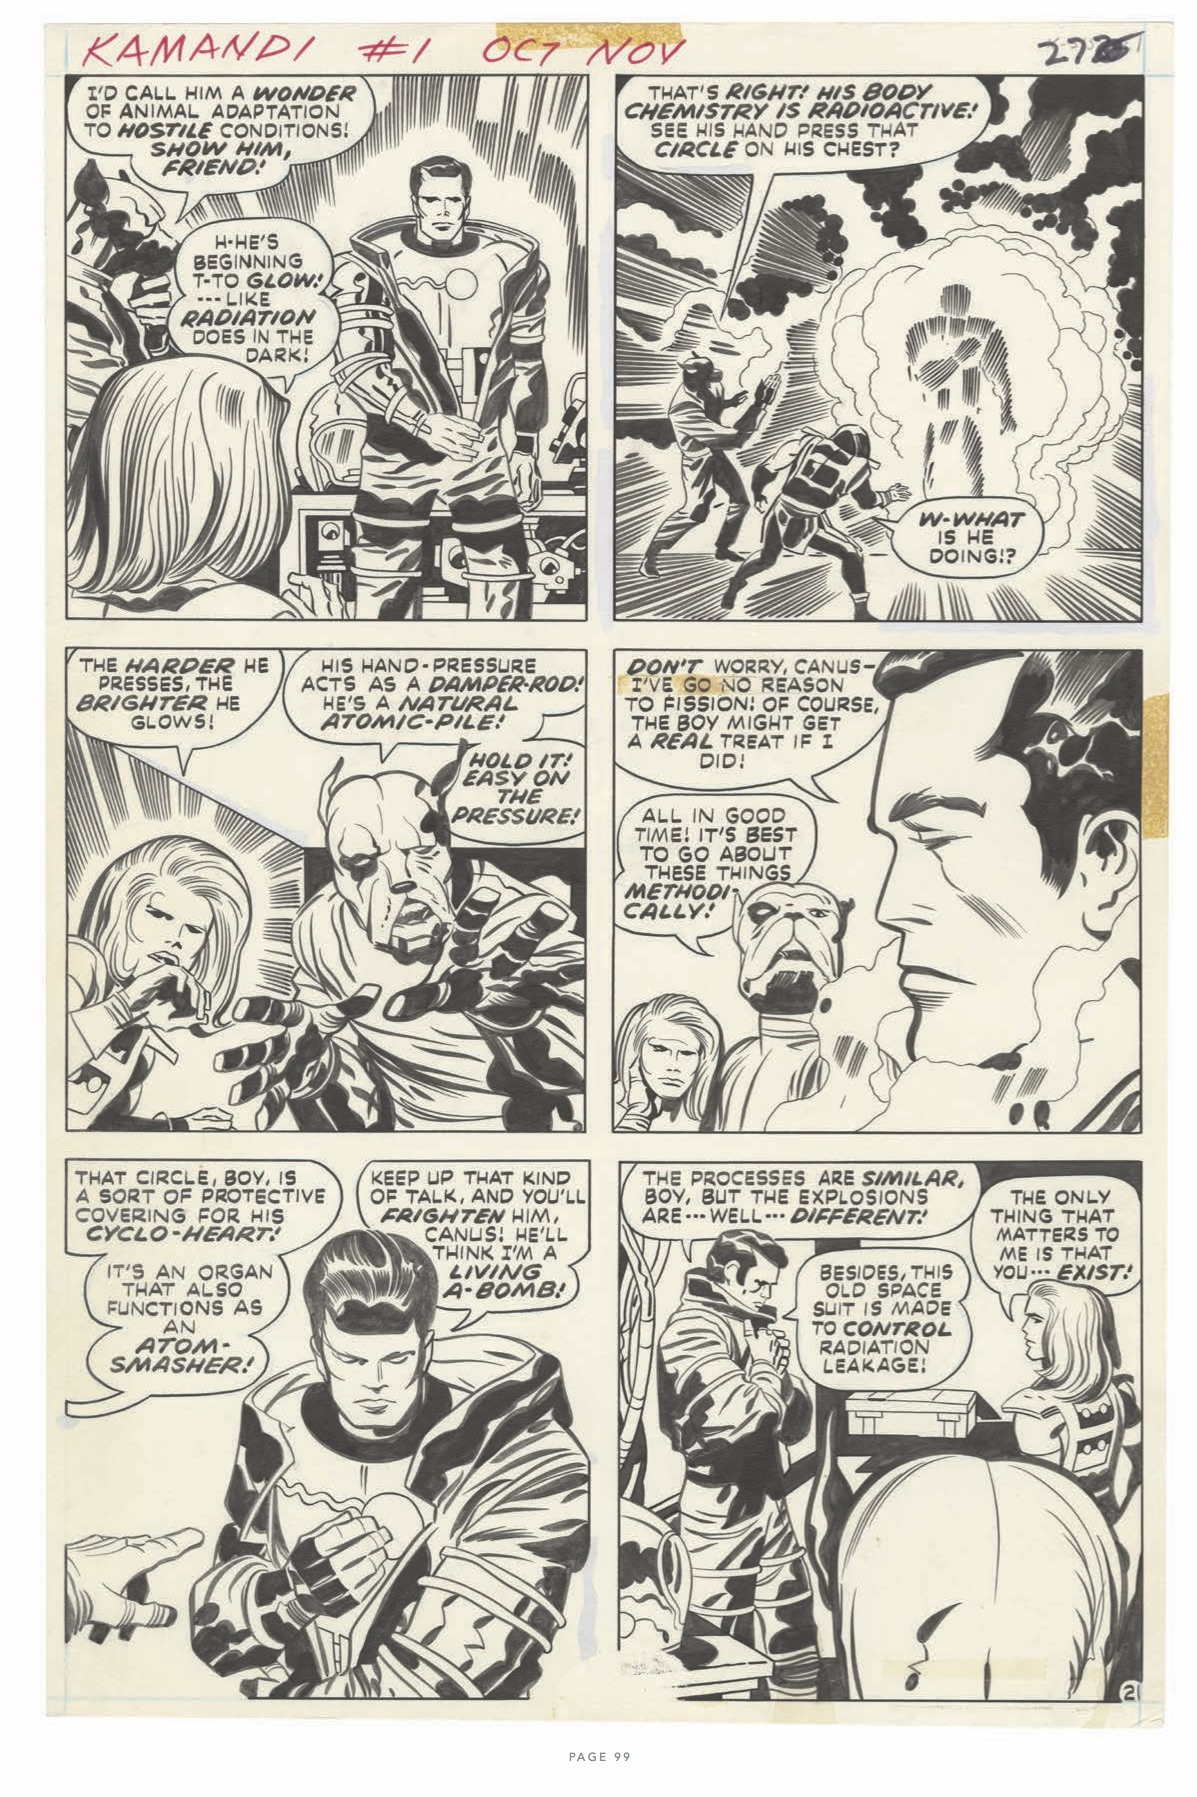 jackkirby_pencils_inks-lokaman3i